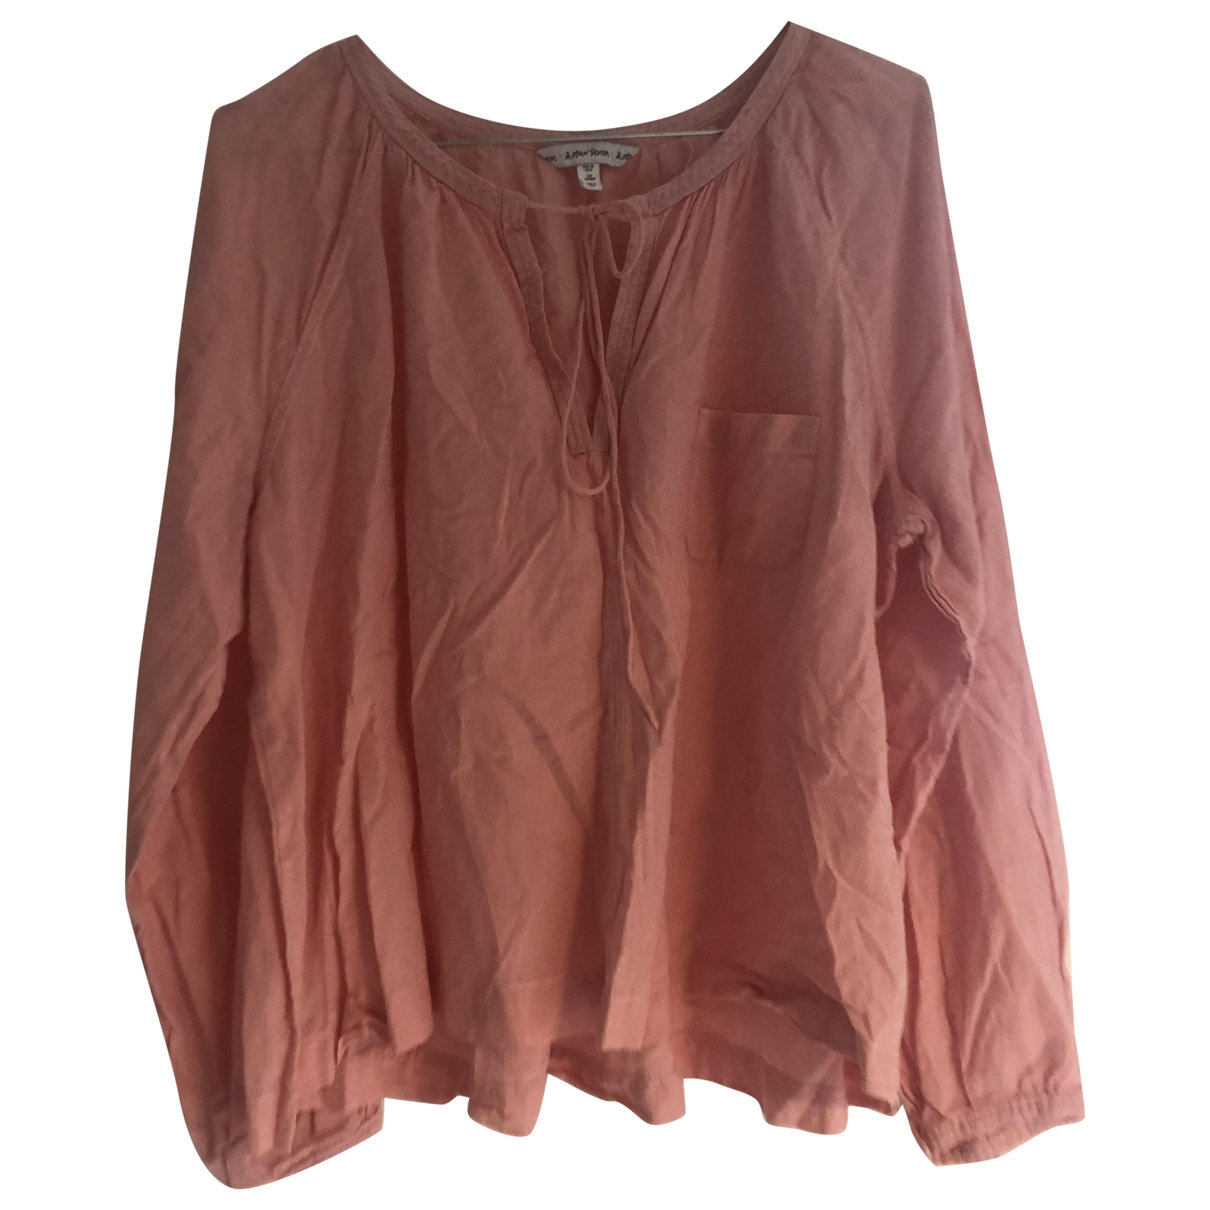 & Stories \N Pink Cotton  top for Women M International